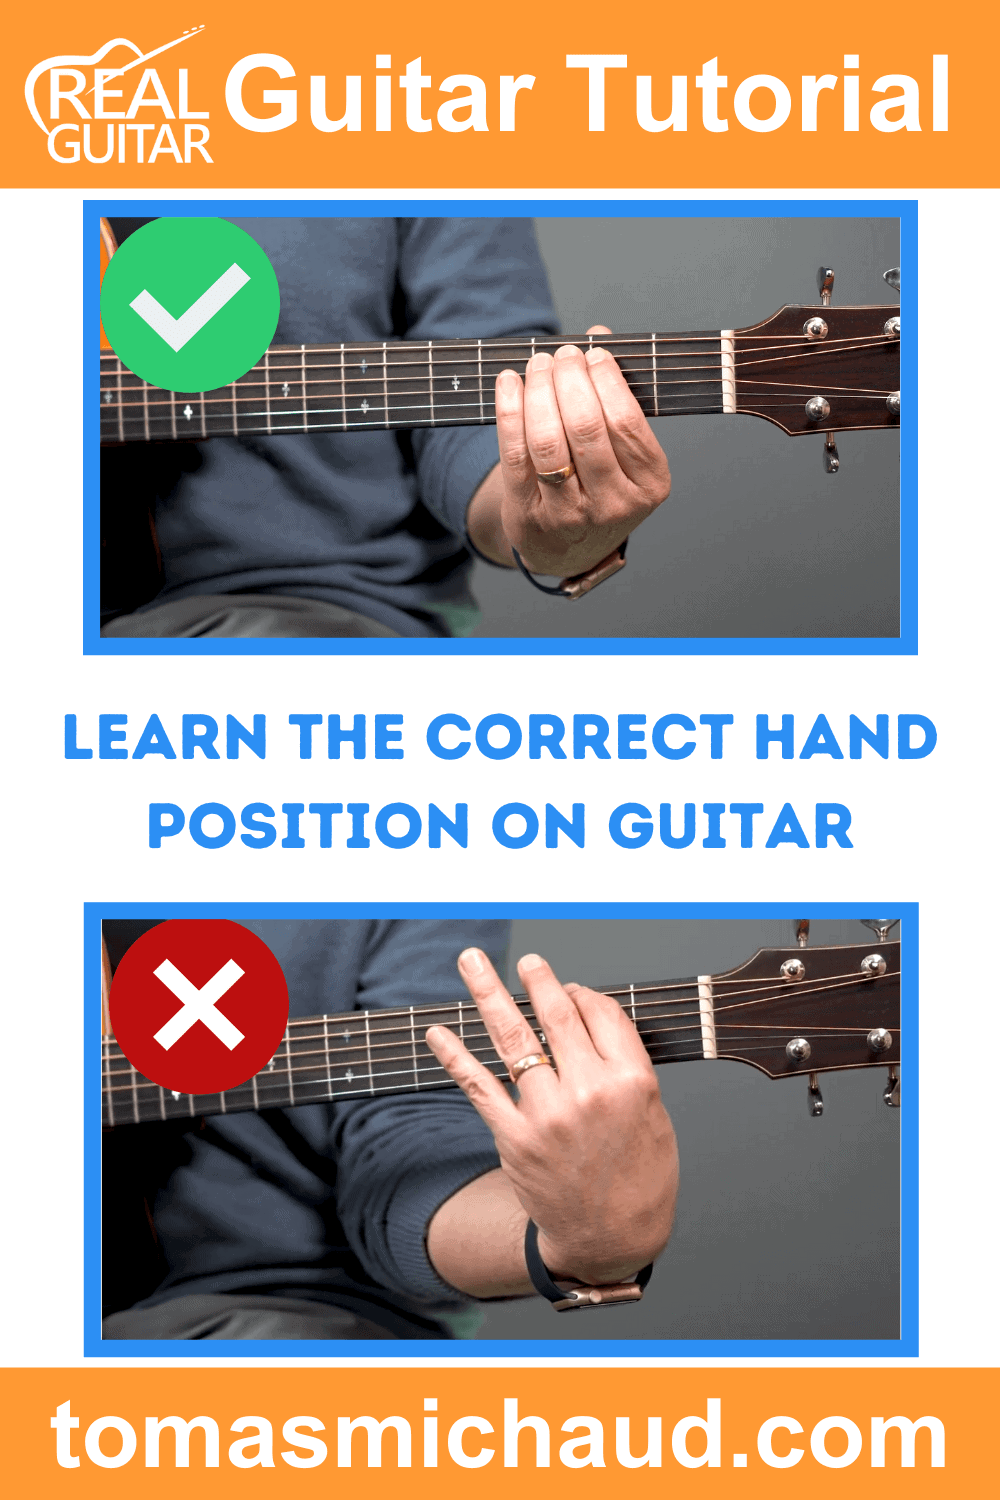 Learn the Correct Hand Position on Guitar